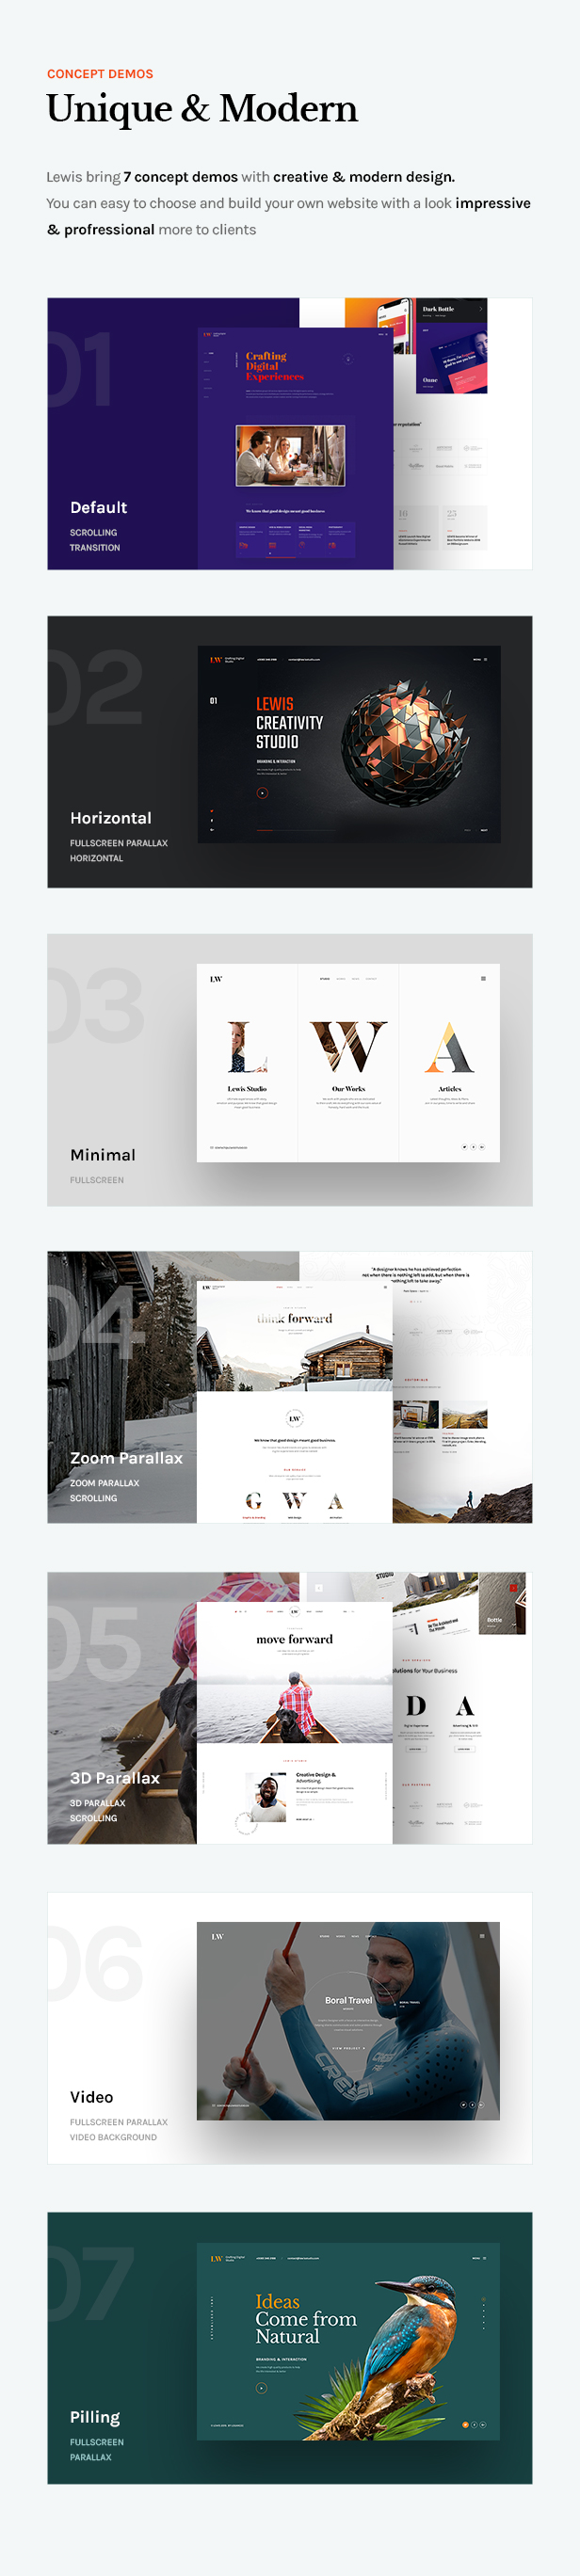 Lewis - Creative Agency Landing Page - 5